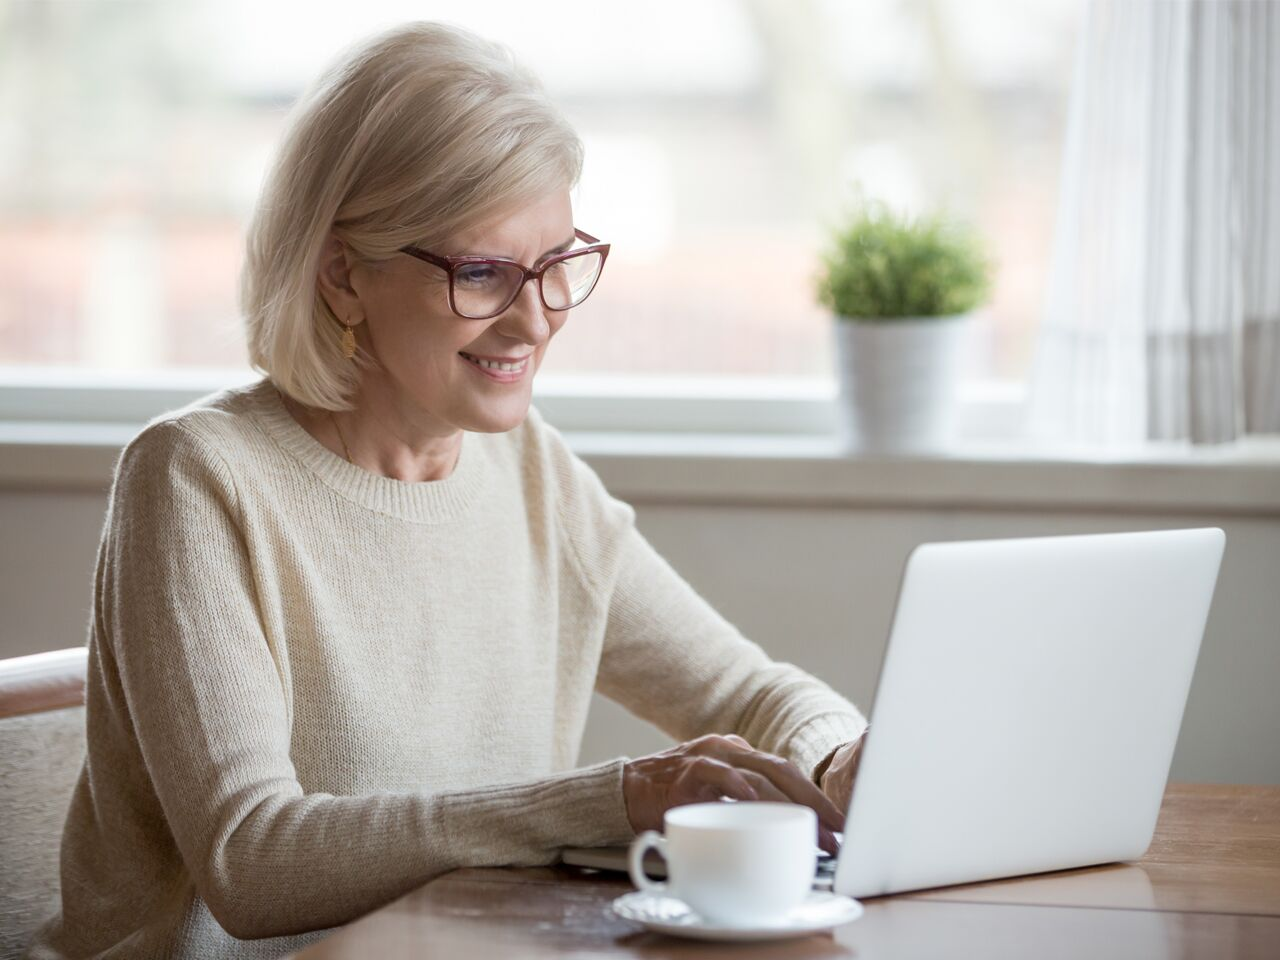 Older woman sits in front of a laptop computer, smiling warmly at the screen, with a white teacup and saucer on the side.